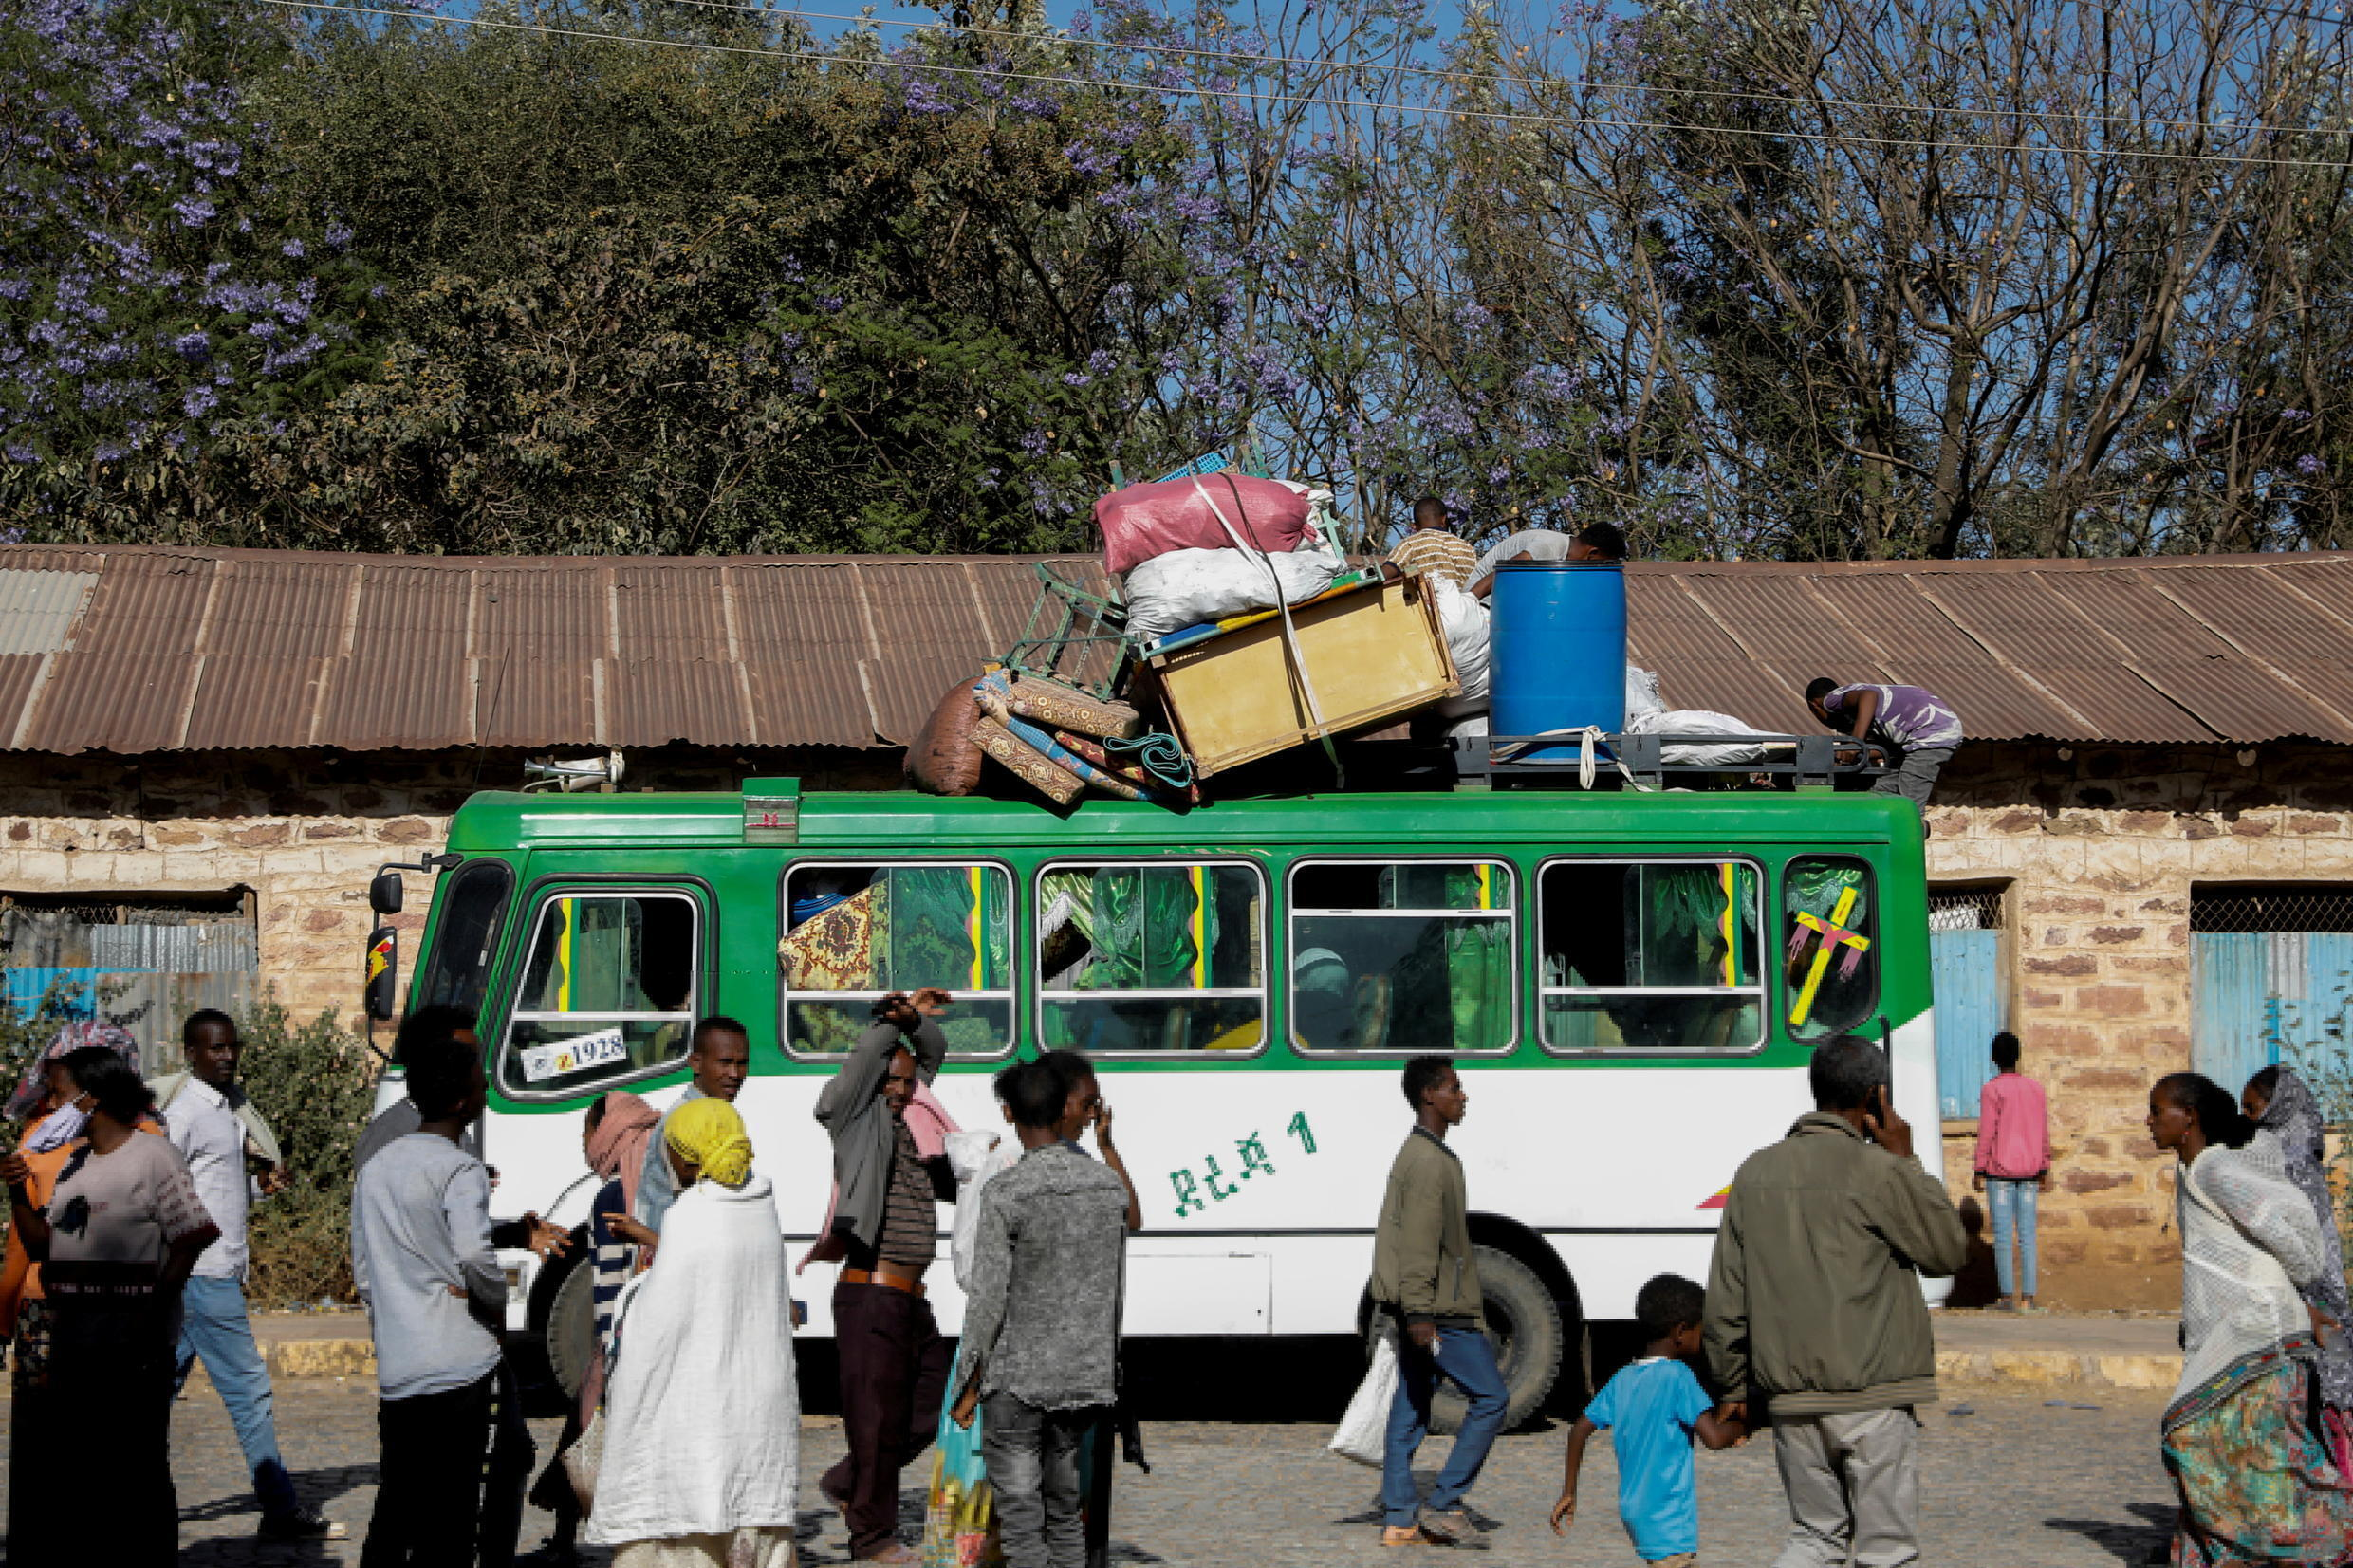 A bus carrying displaced people arrives at the Tsehaye primary school, which was turned into a temporary shelter for people displaced by conflict, in the town of Shire, Tigray region, Ethiopia, March 14, 2021.